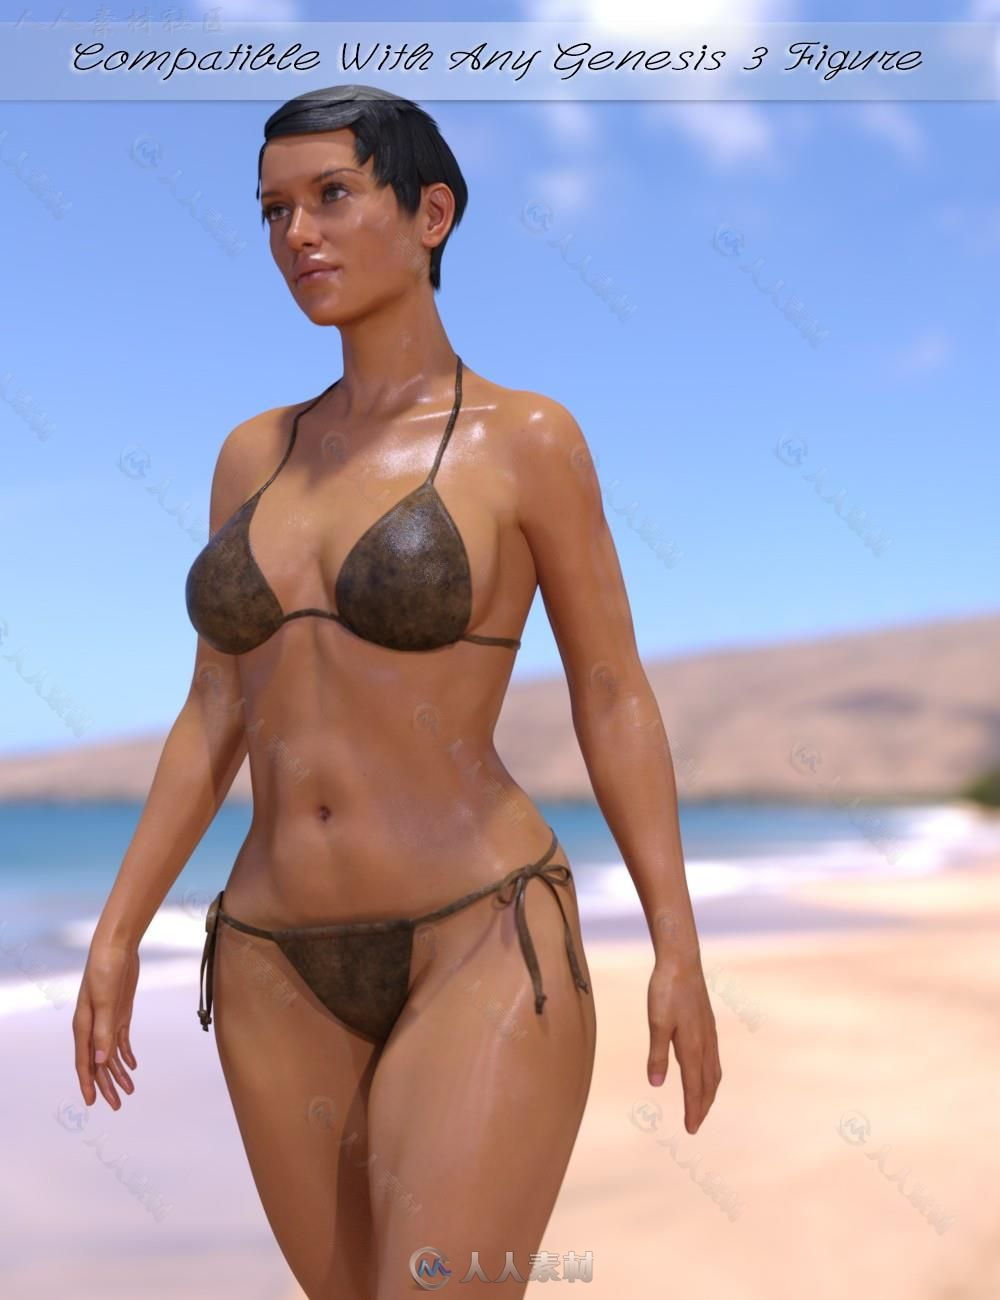 04-wet-and-tanned-skins-for-genesis-3-daz3d.jpg